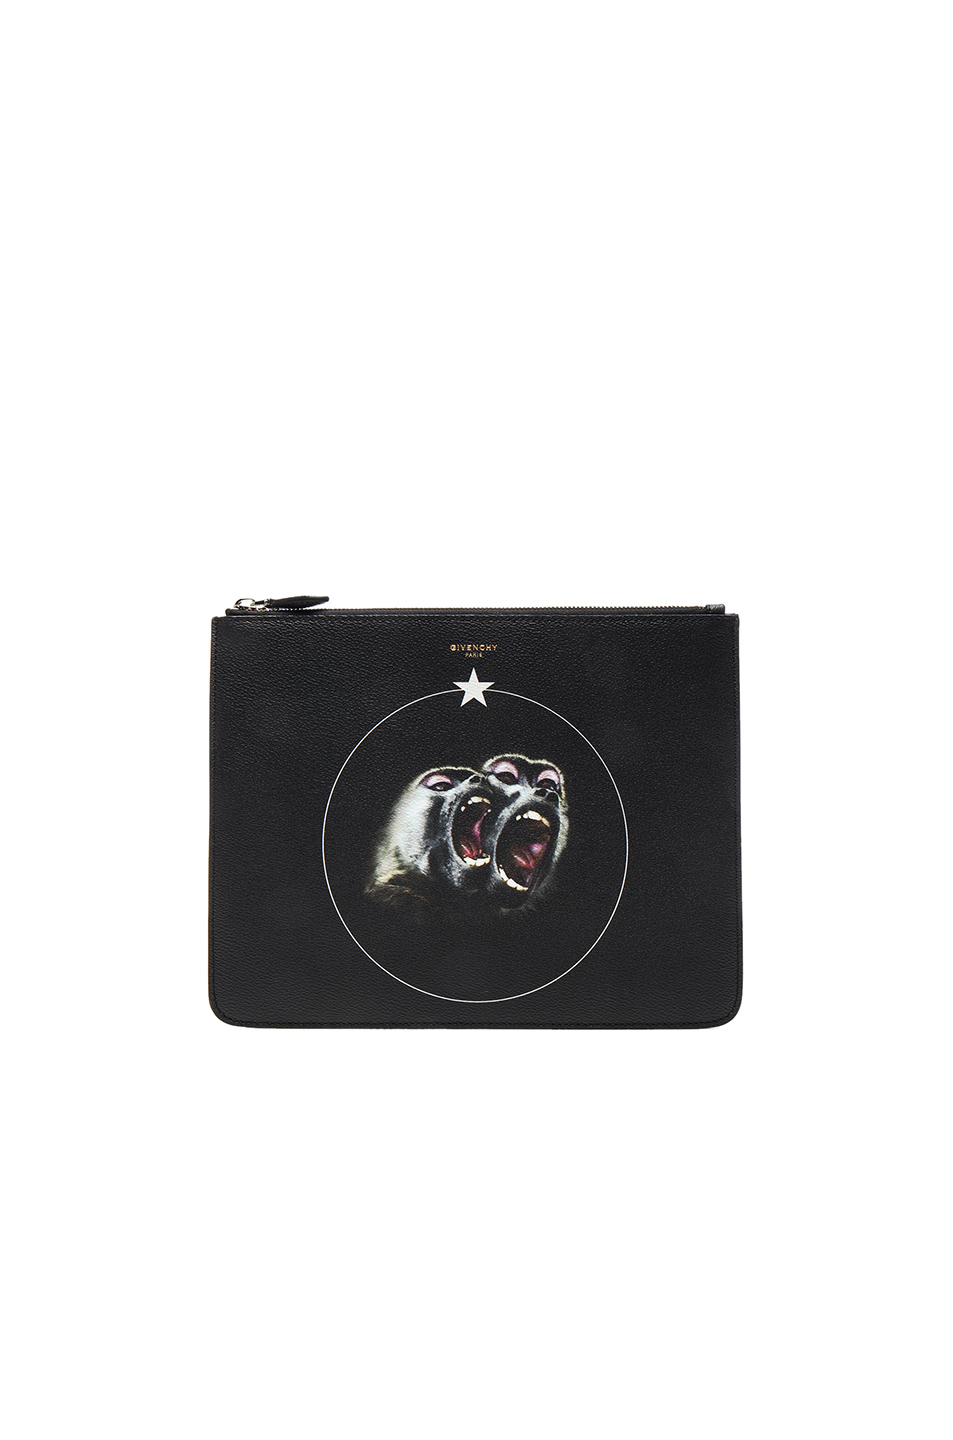 Photo of Givenchy Large Zip Pouch in Black - shop Givenchy menswear